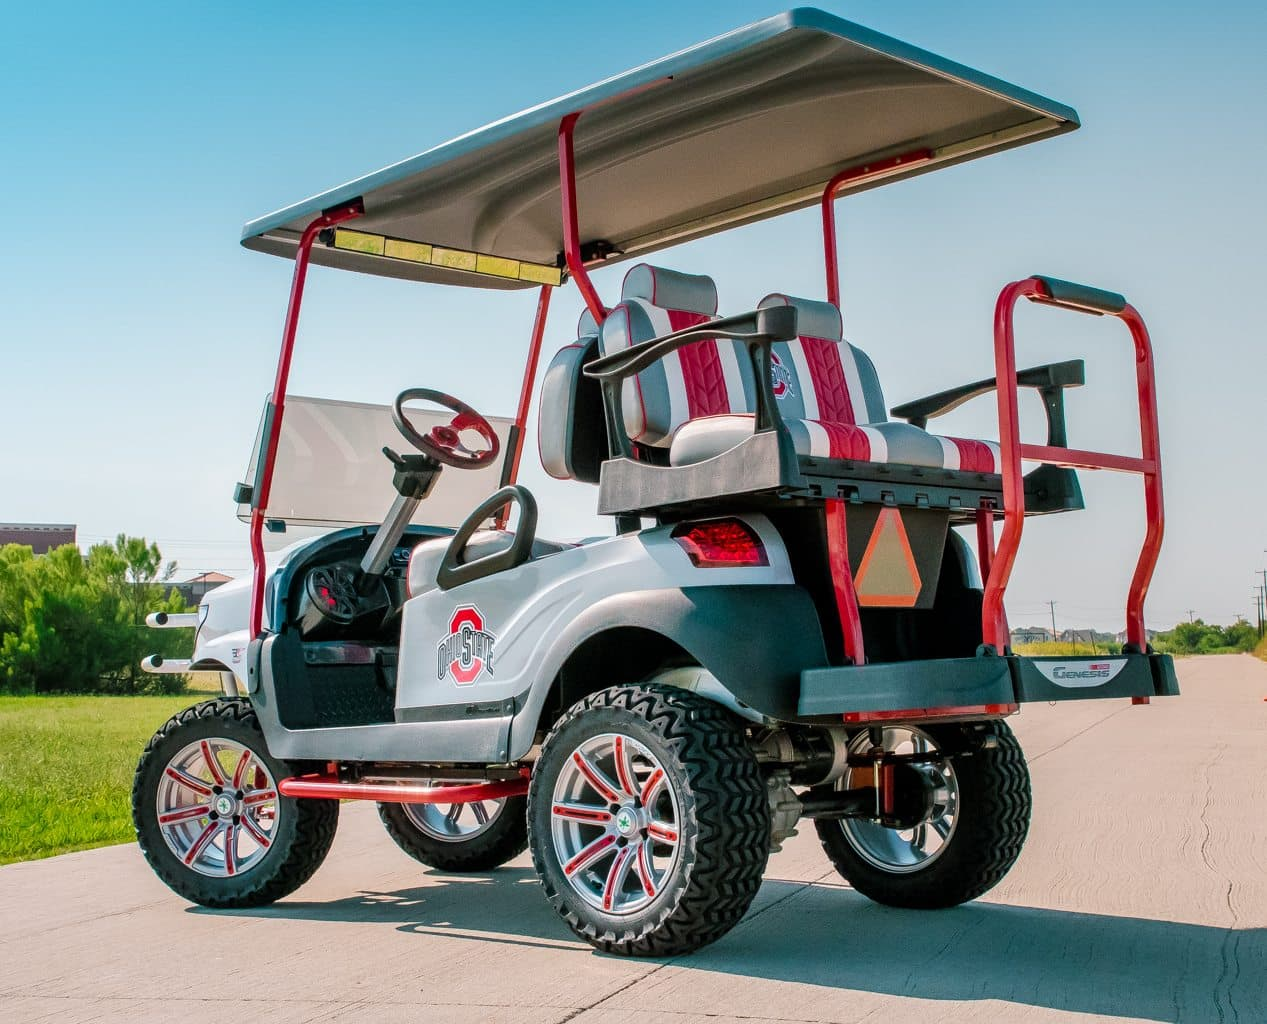 The Ohio State Golf Cart full